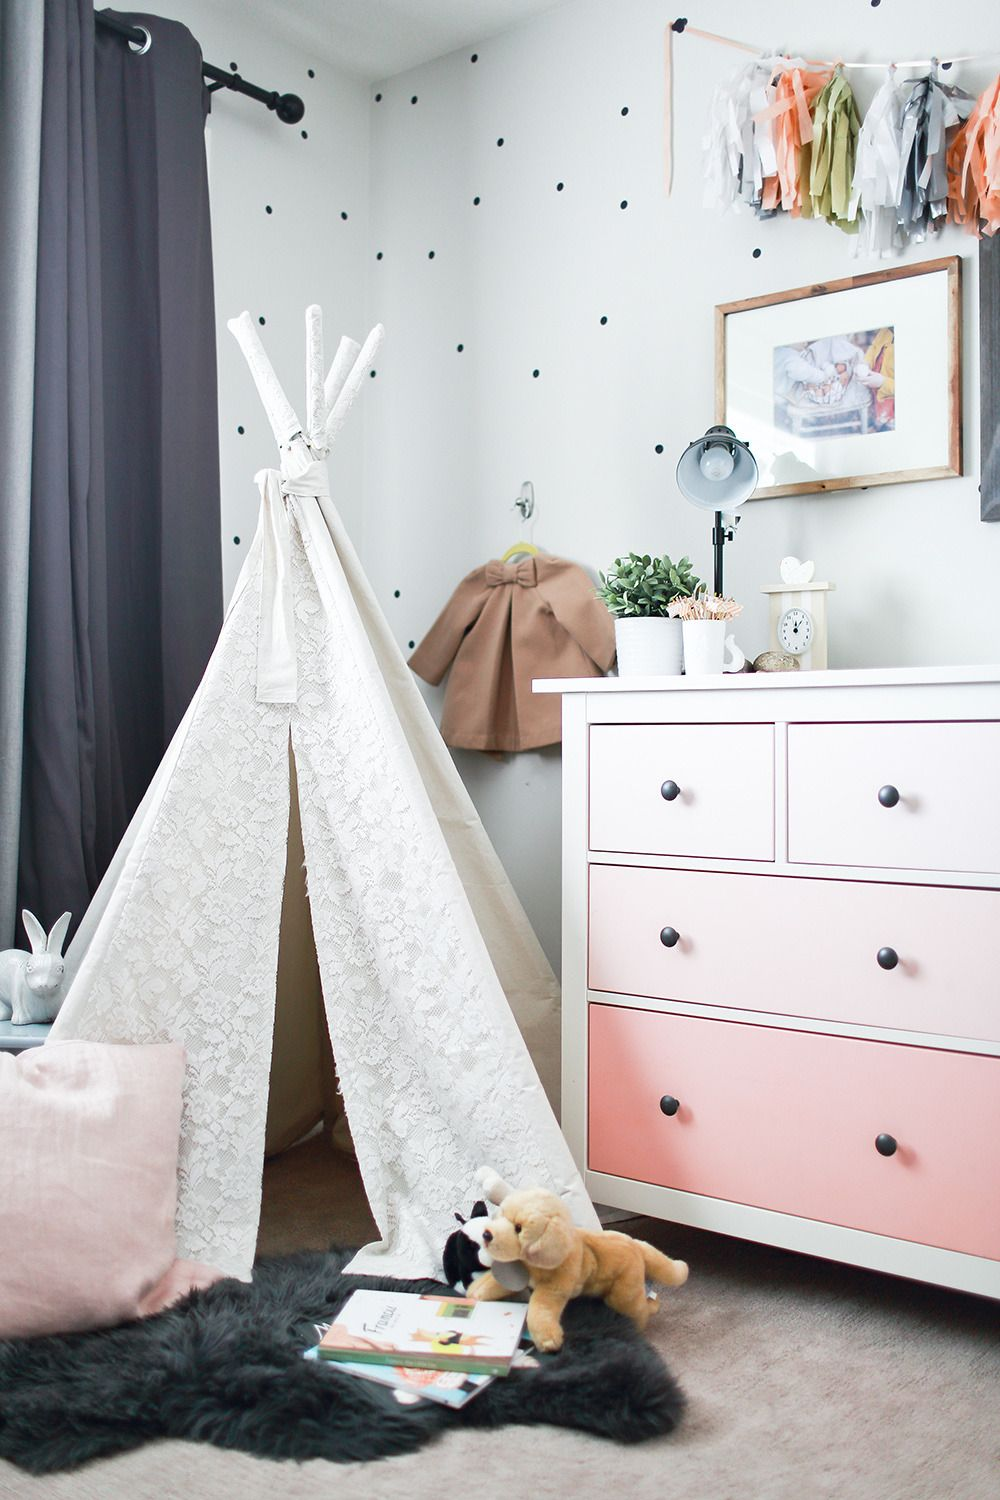 Black Polka Dots On The White Walls Is Such A Unique Idea In This Girls Room